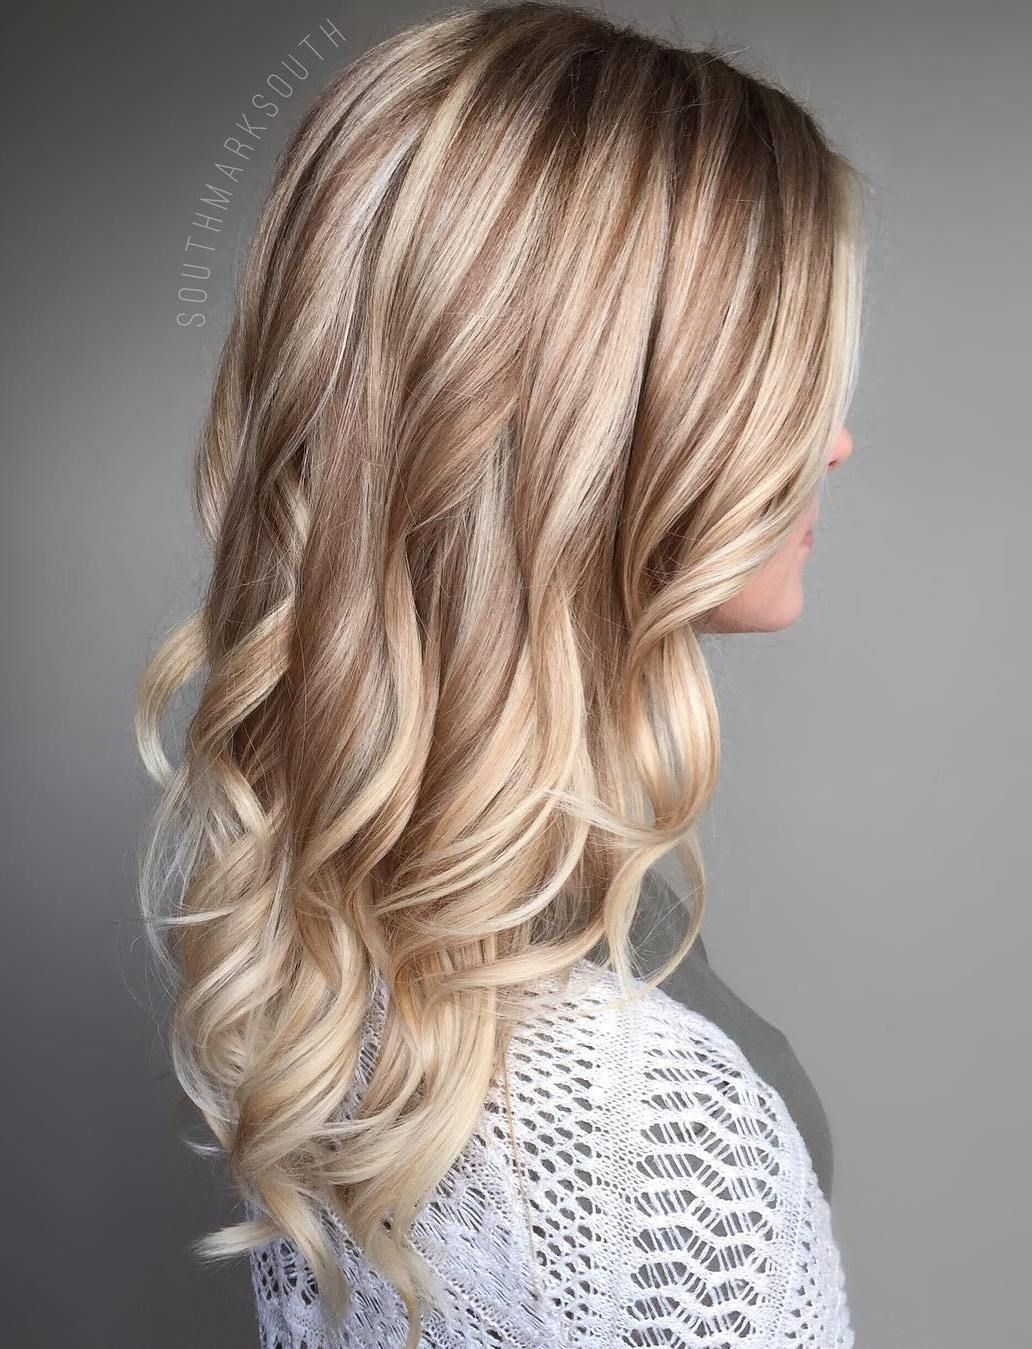 50 Blonde Hair Color Ideas for the Current Season in 2019 ...